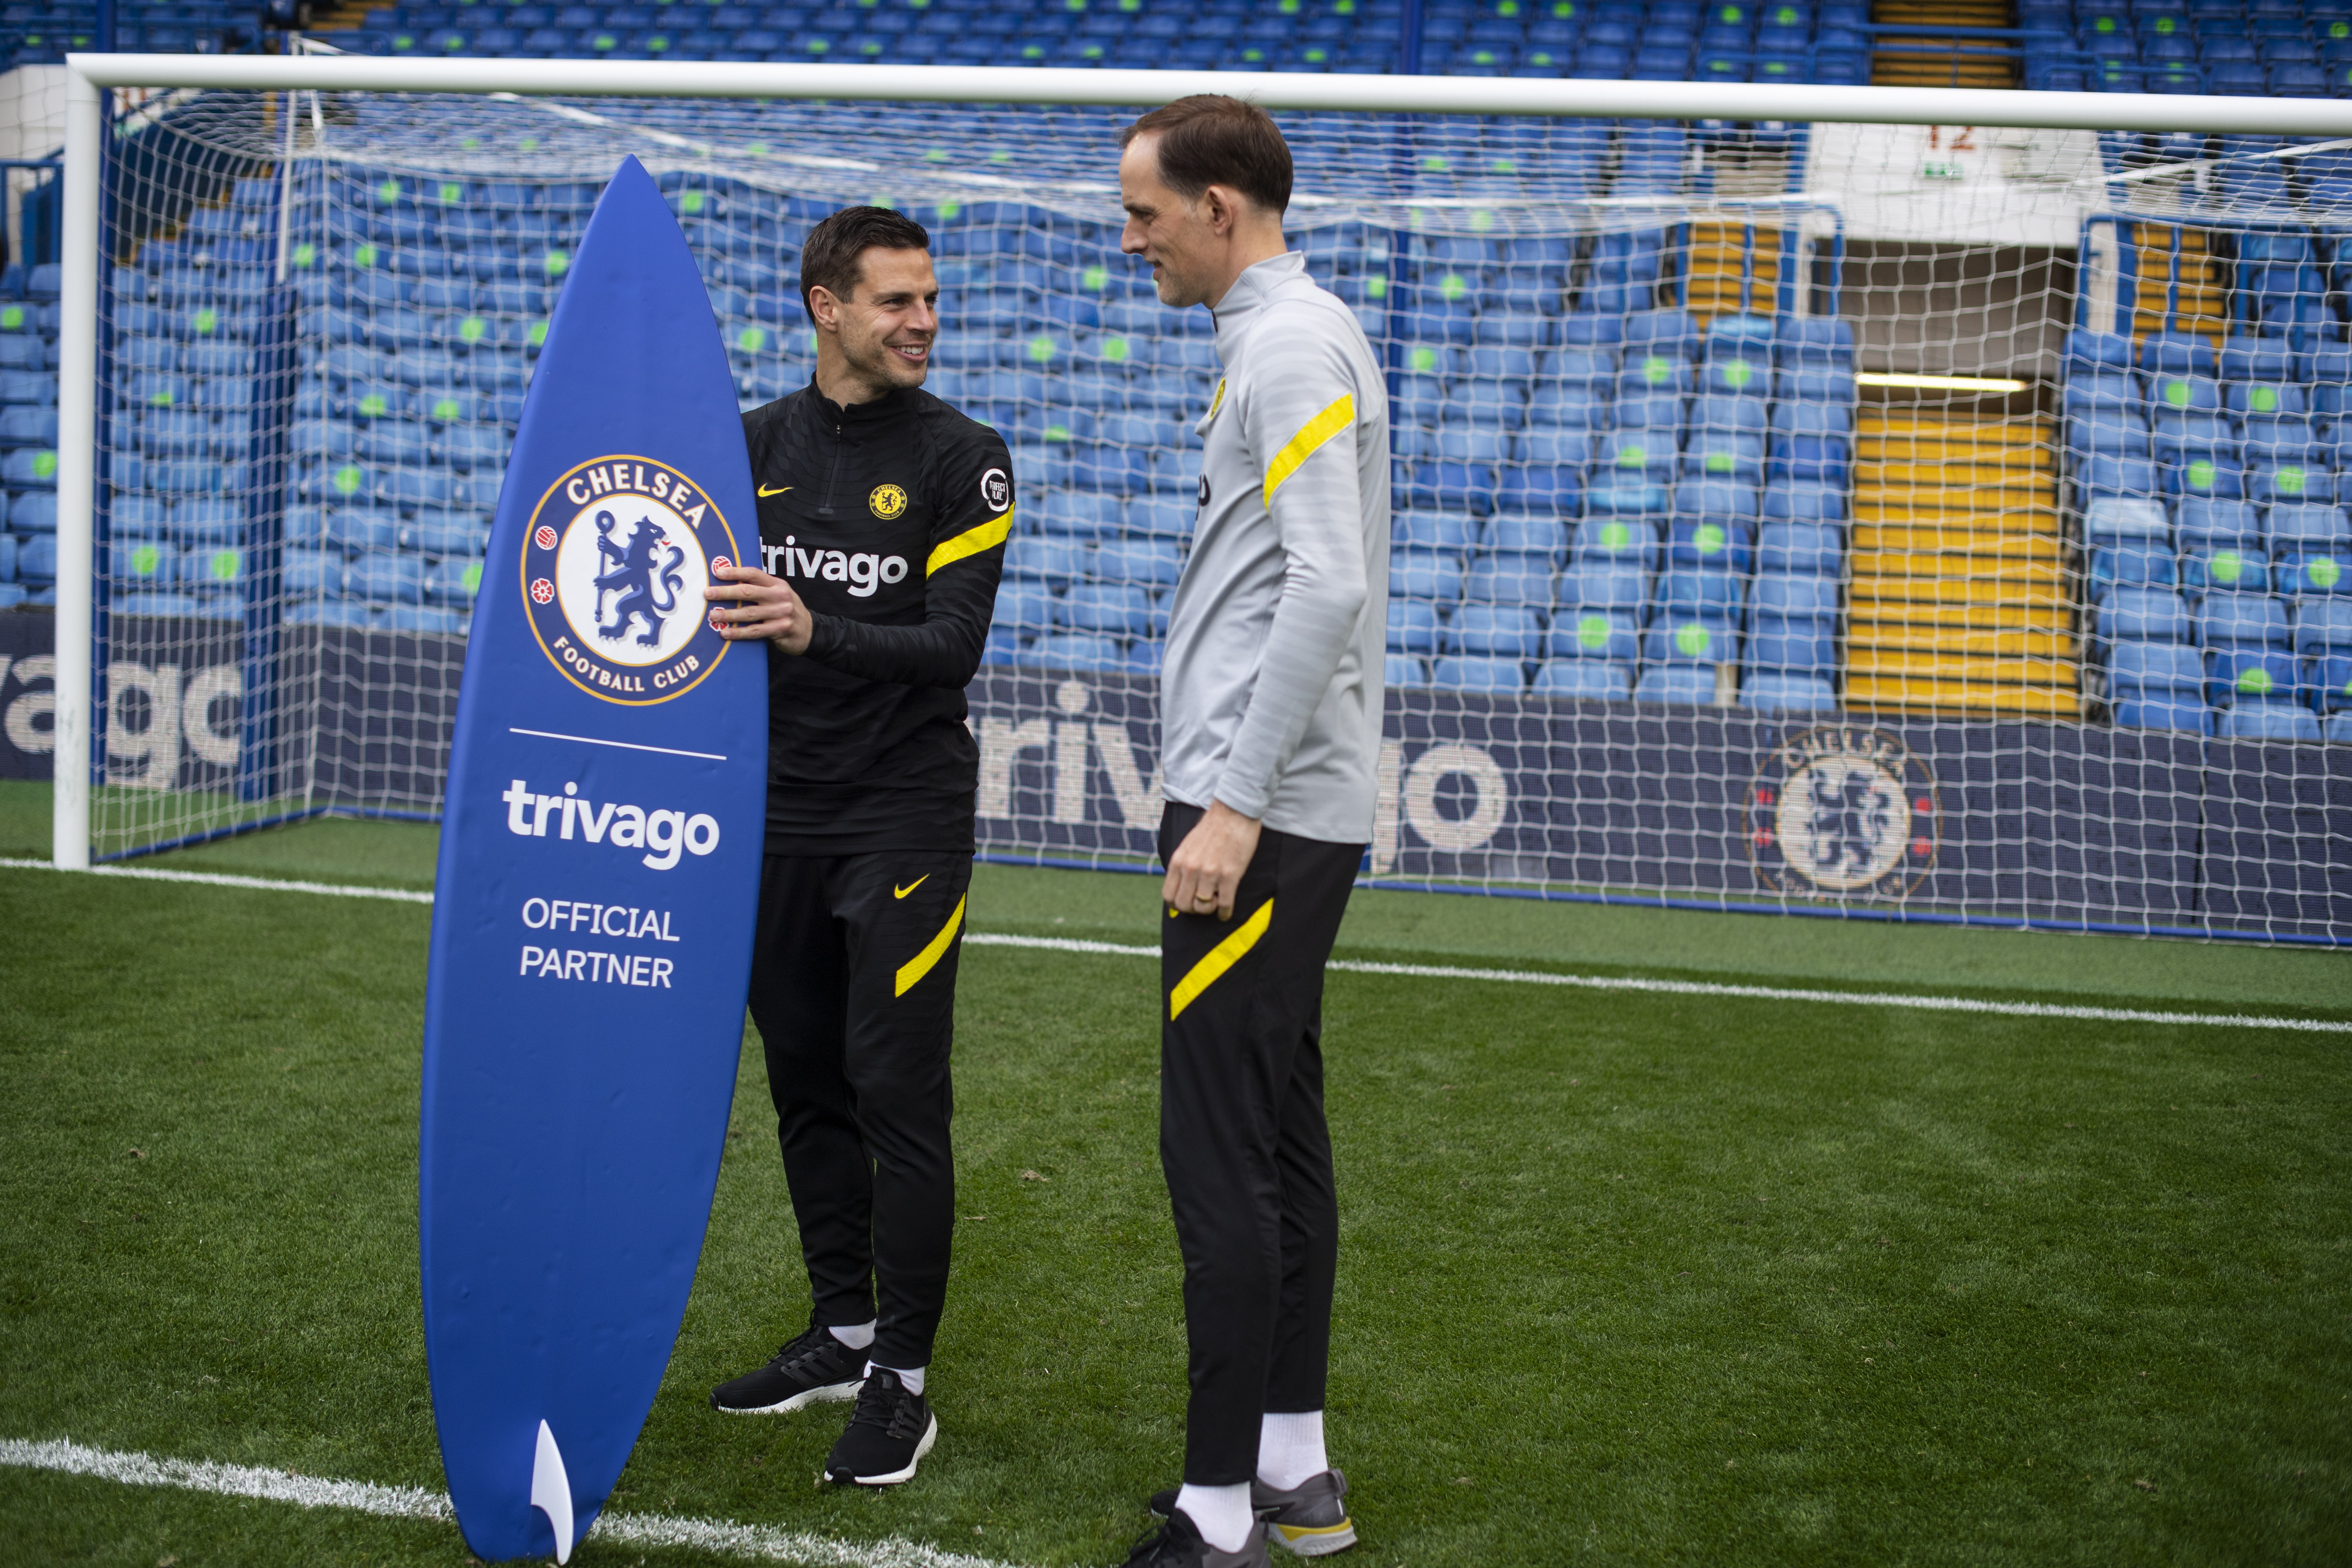 Chelsea partnership with Trivago